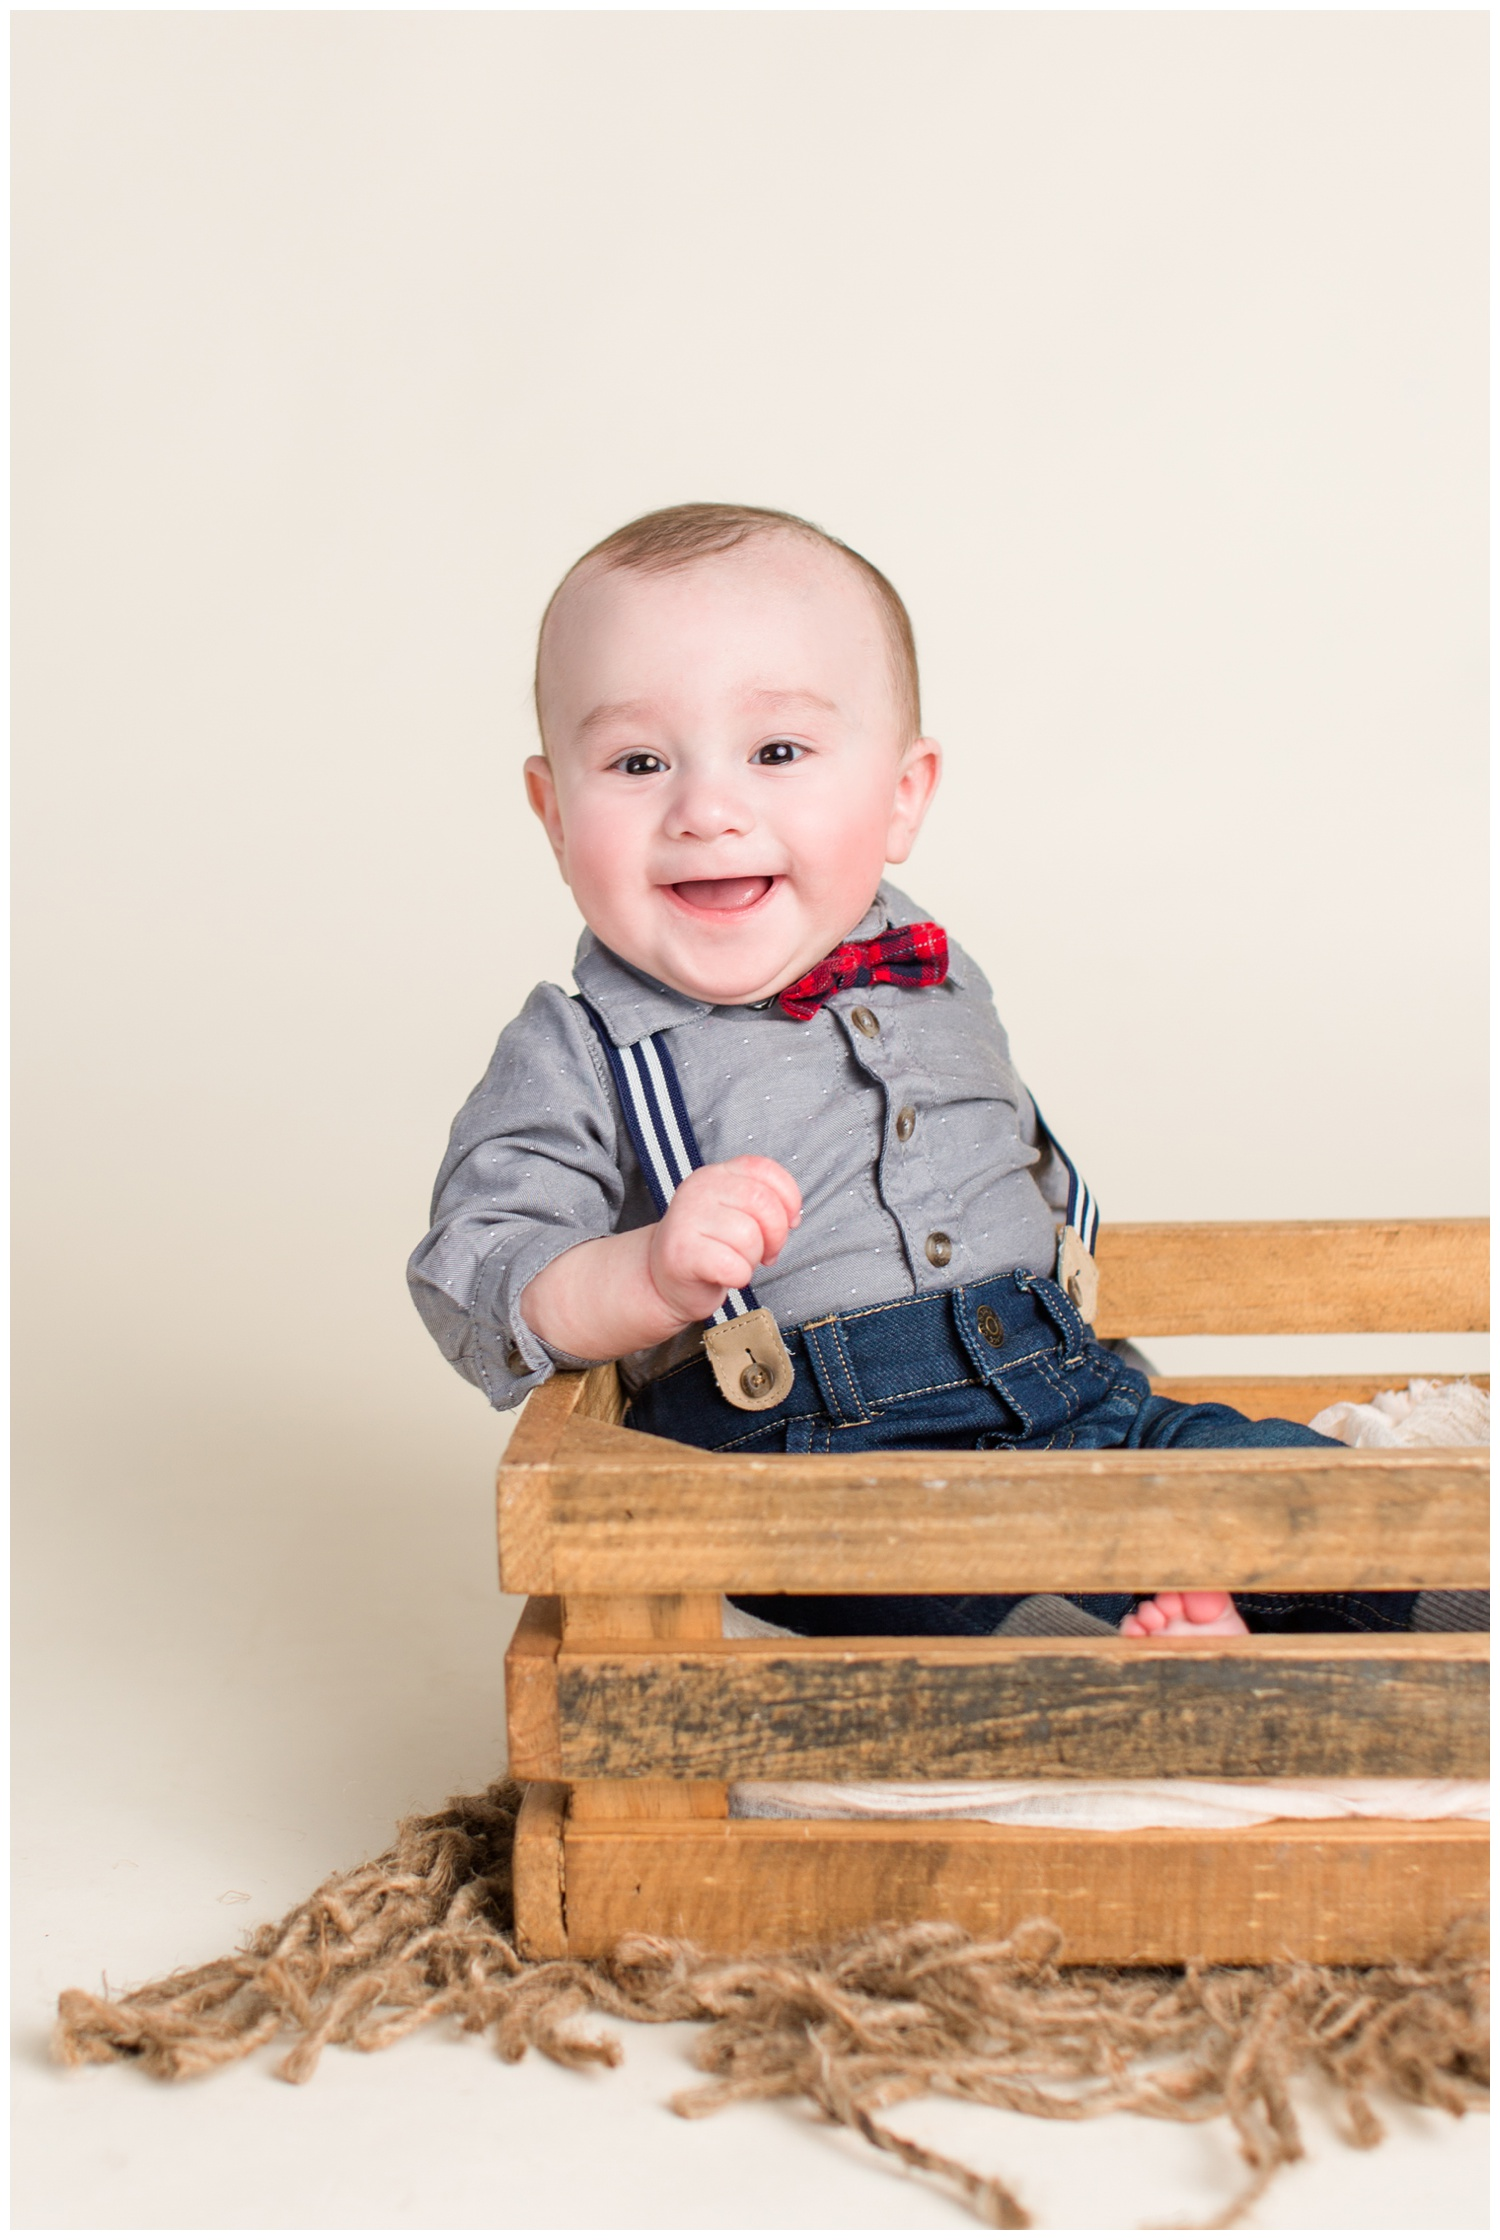 Baby boy sitter session 6 month old photos | Algona Iowa Photographer | CB Studio